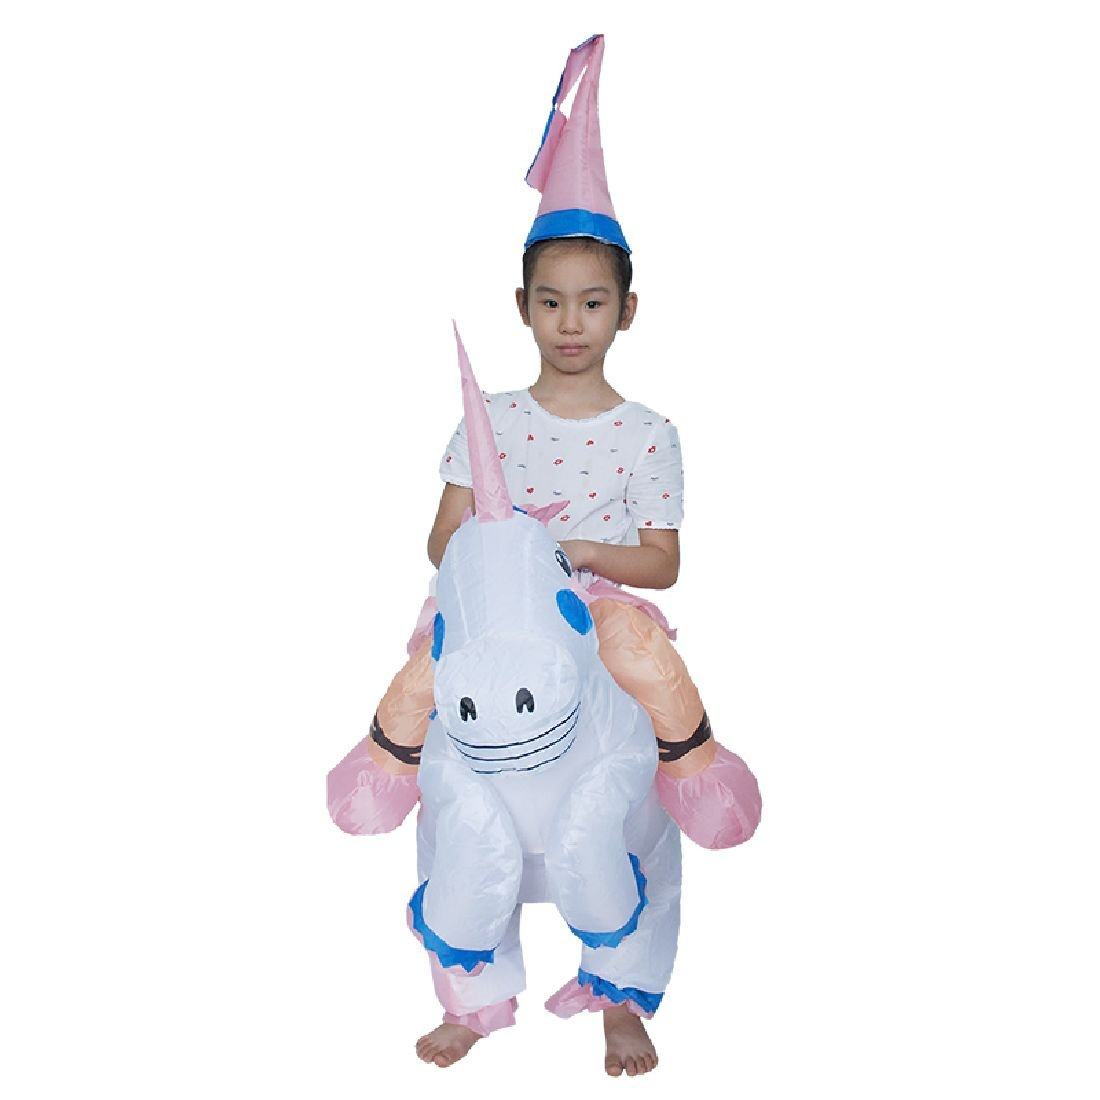 Cosplay Costumes Animal Inflatable Unicorn Costume Party Dress 40 To 50 Inch by Crystalbella Inflatable Cos